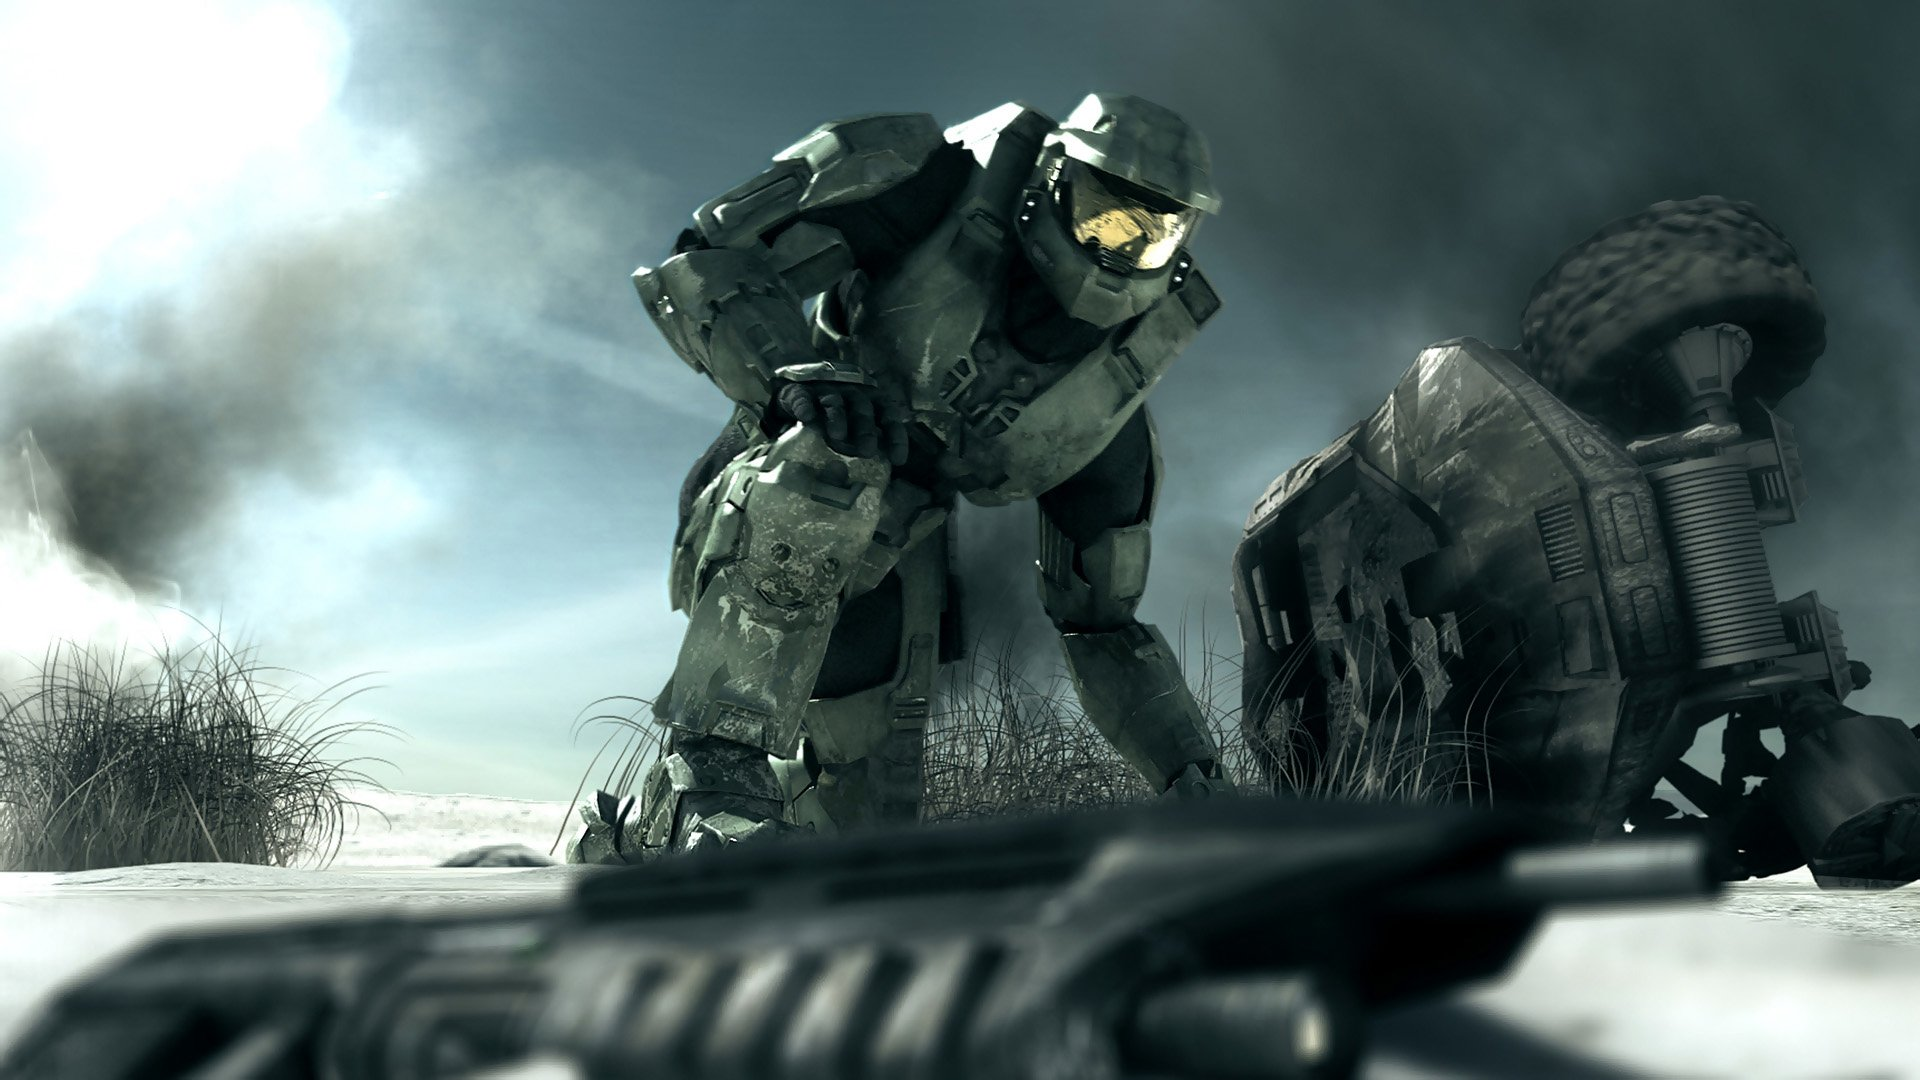 Halo Combat Evolved HD Wallpaper Background Image 1920x1080 1920x1080